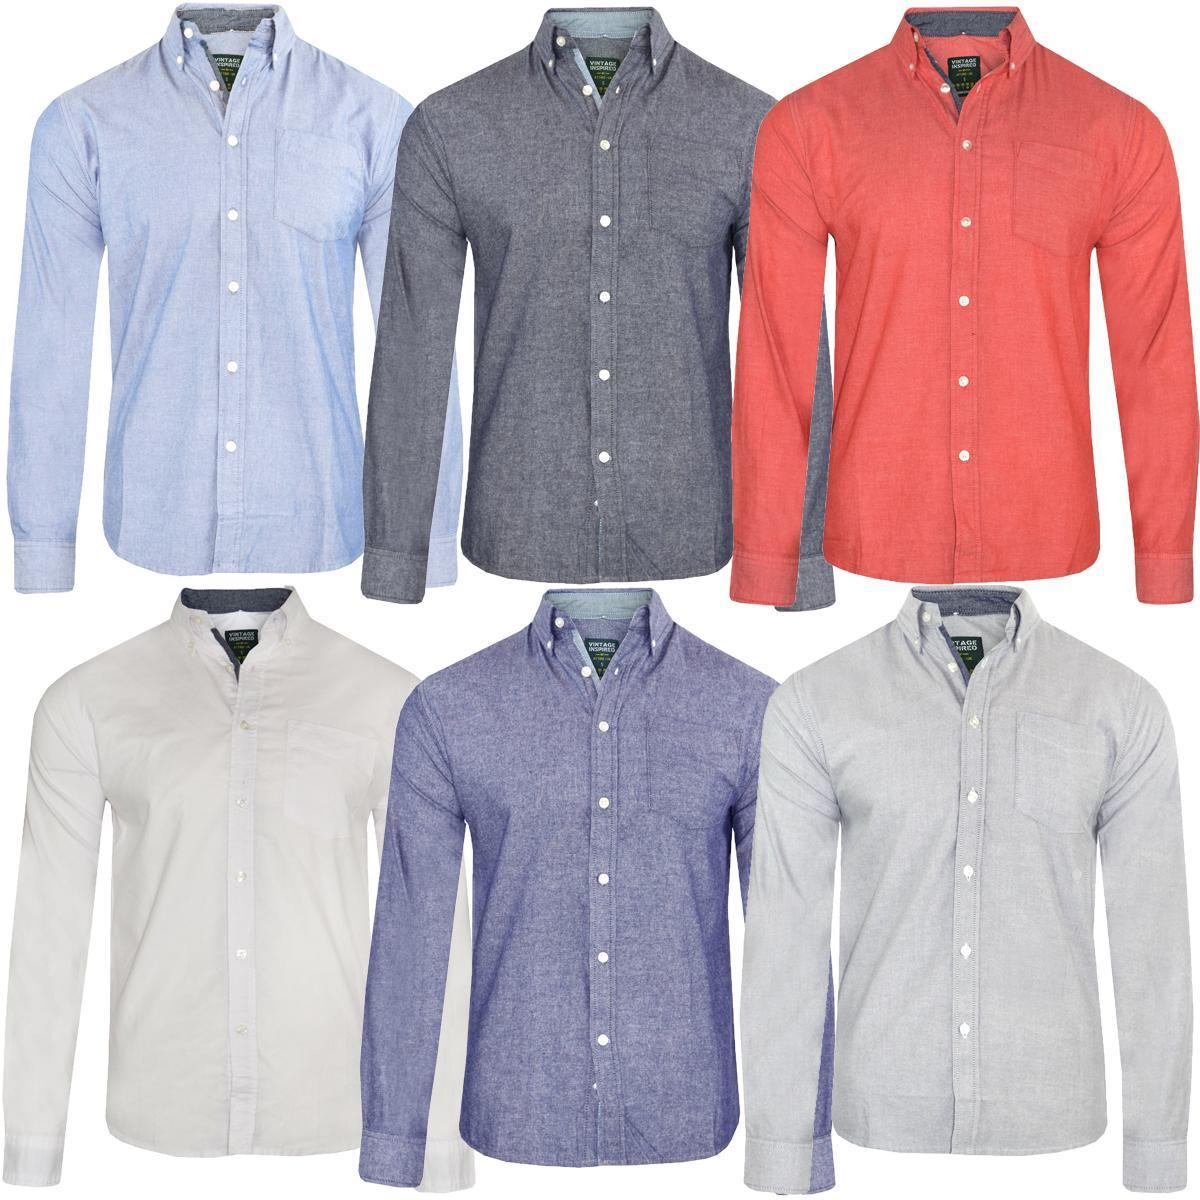 Mens Long Sleeved Oxford Shirt Button Down Collar 100 Cotton Ebay